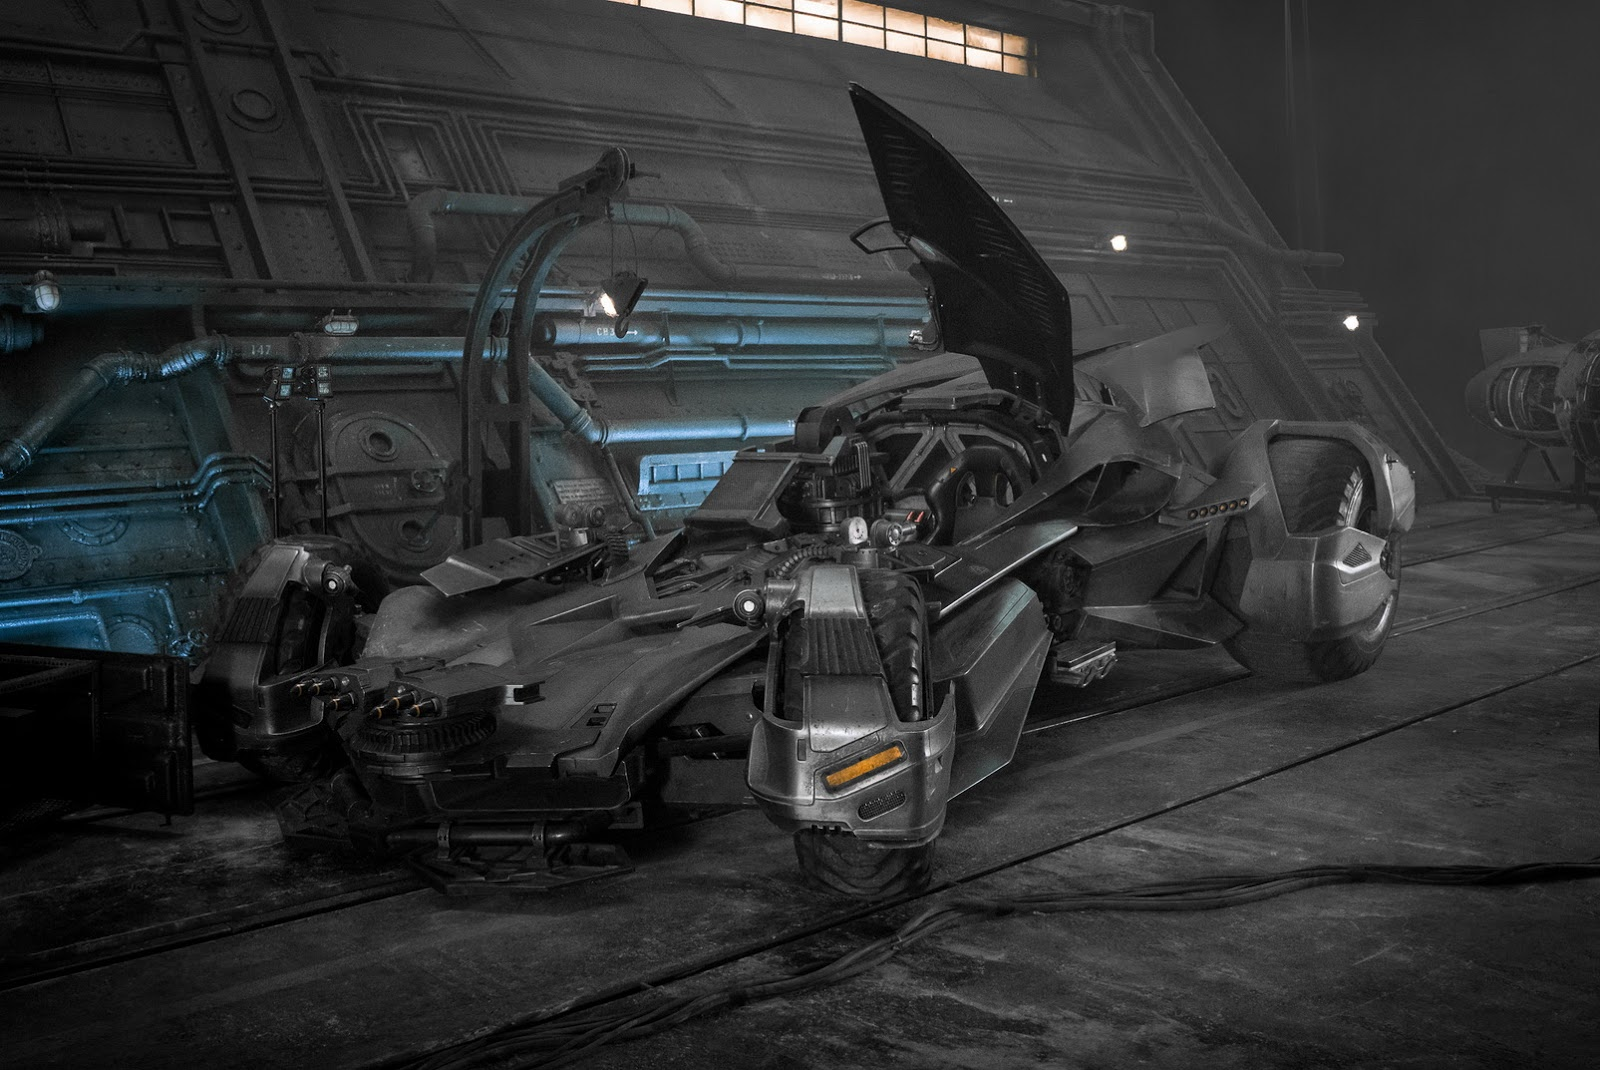 justice-league-upgraded-batmobile-1.jpg